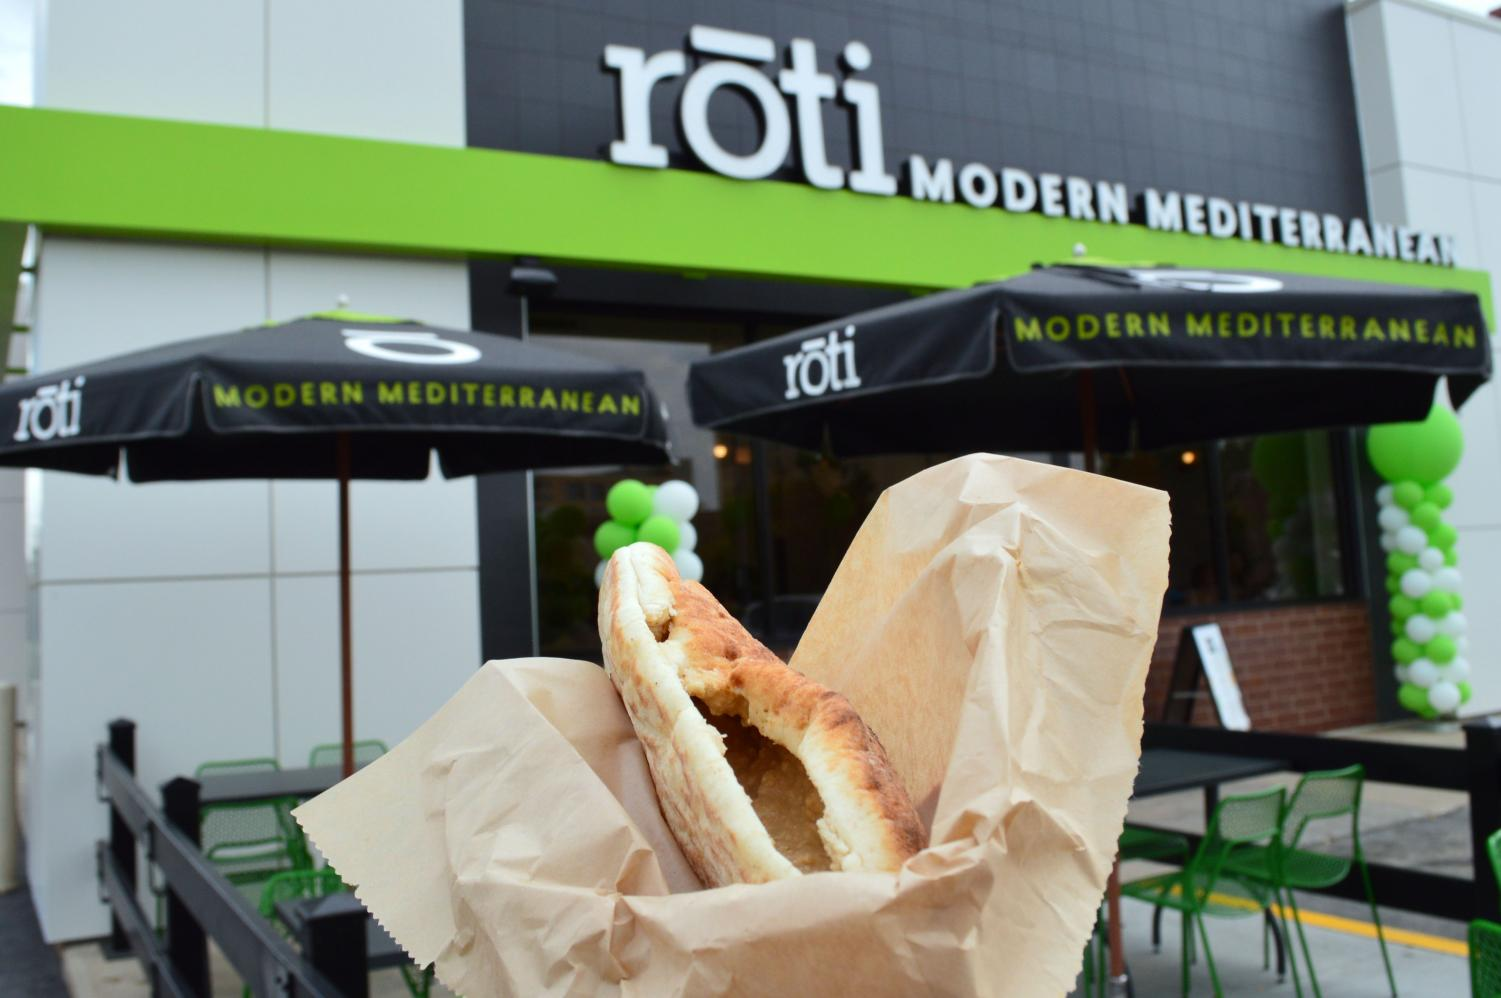 The recently opened St. Louis Park Roti Modern Mediterranean offered a smokey hummus, which overpowered their tahini. Their falafel sandwich had the lowest score out of the five restaurants, being rated 2/5 stars.